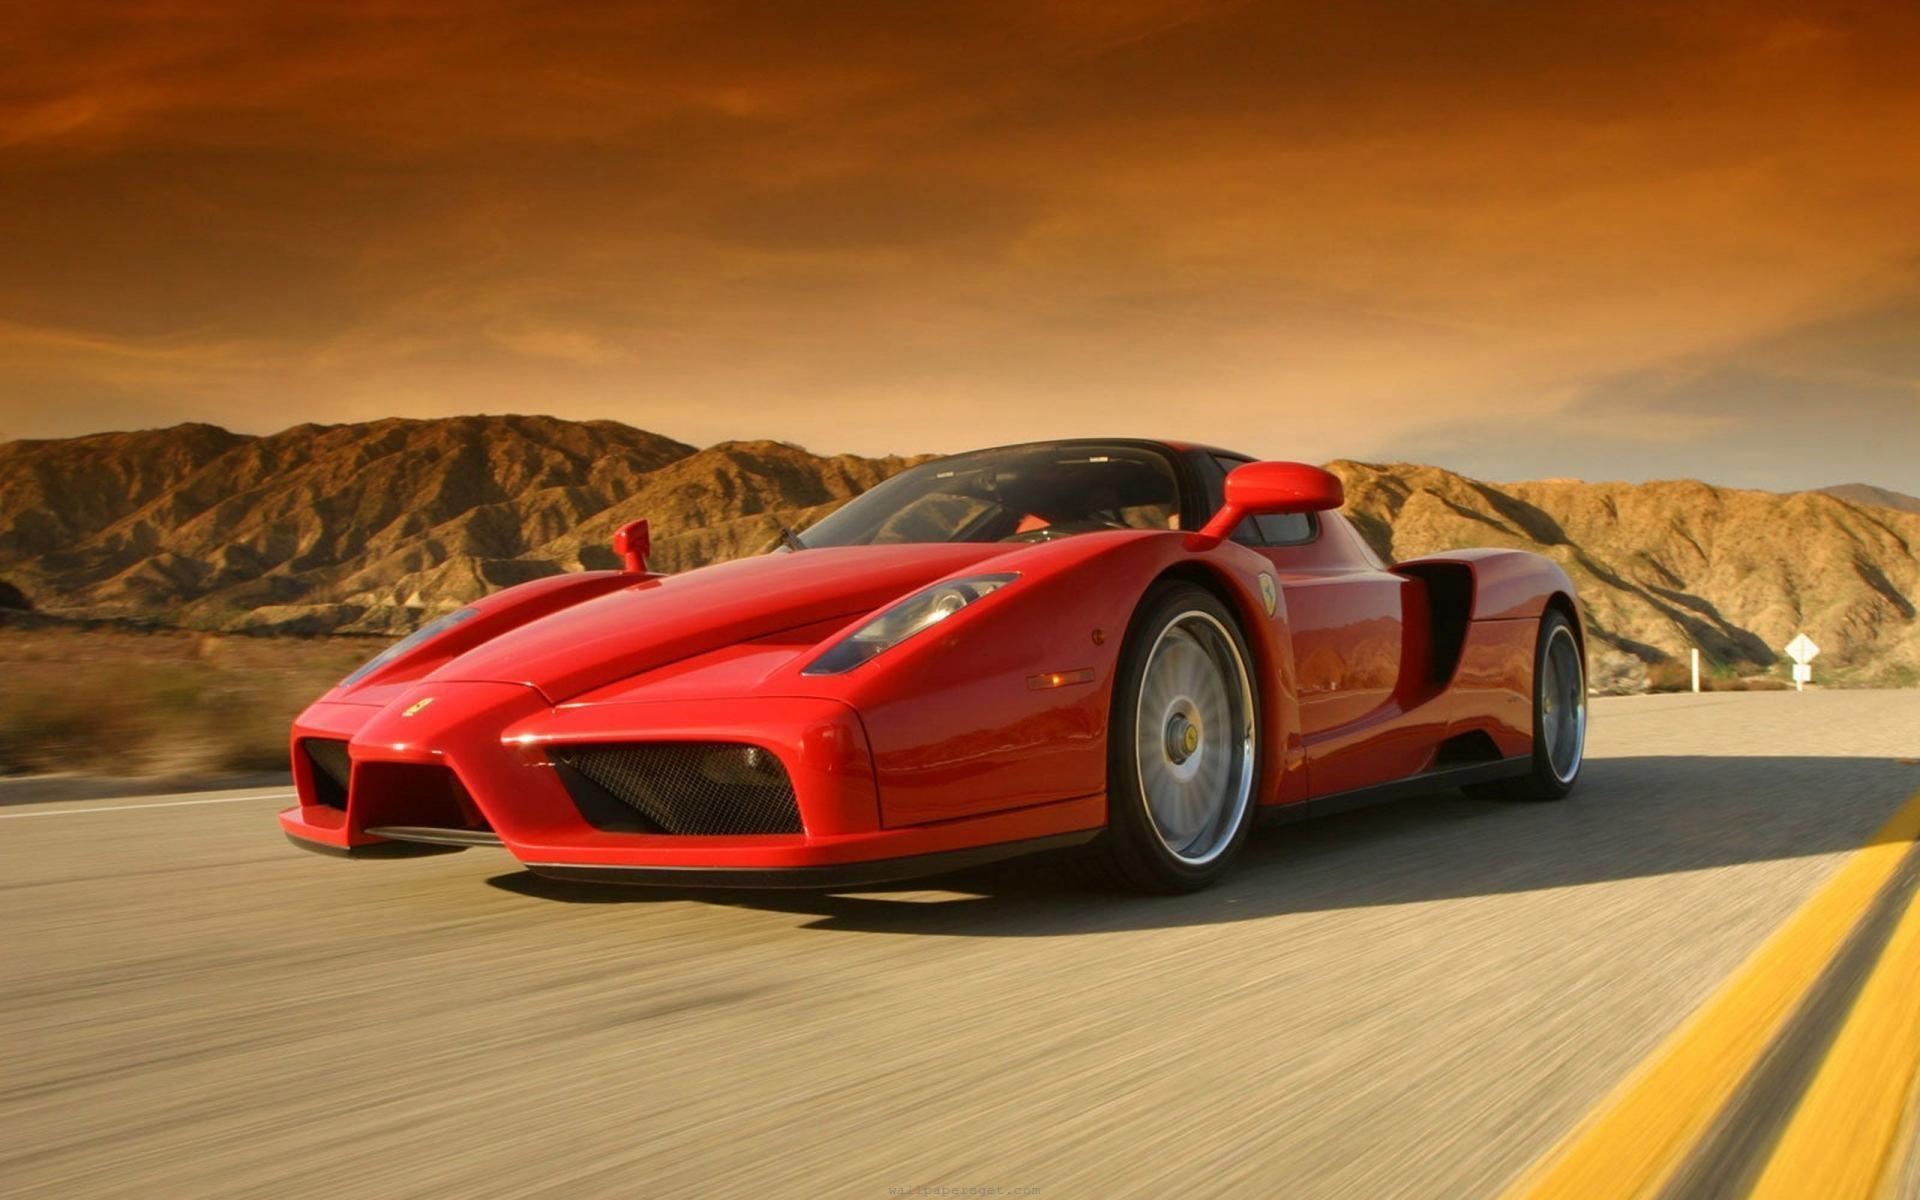 1920x1200 FunMozar – Ferrari Enzo Wallpapers